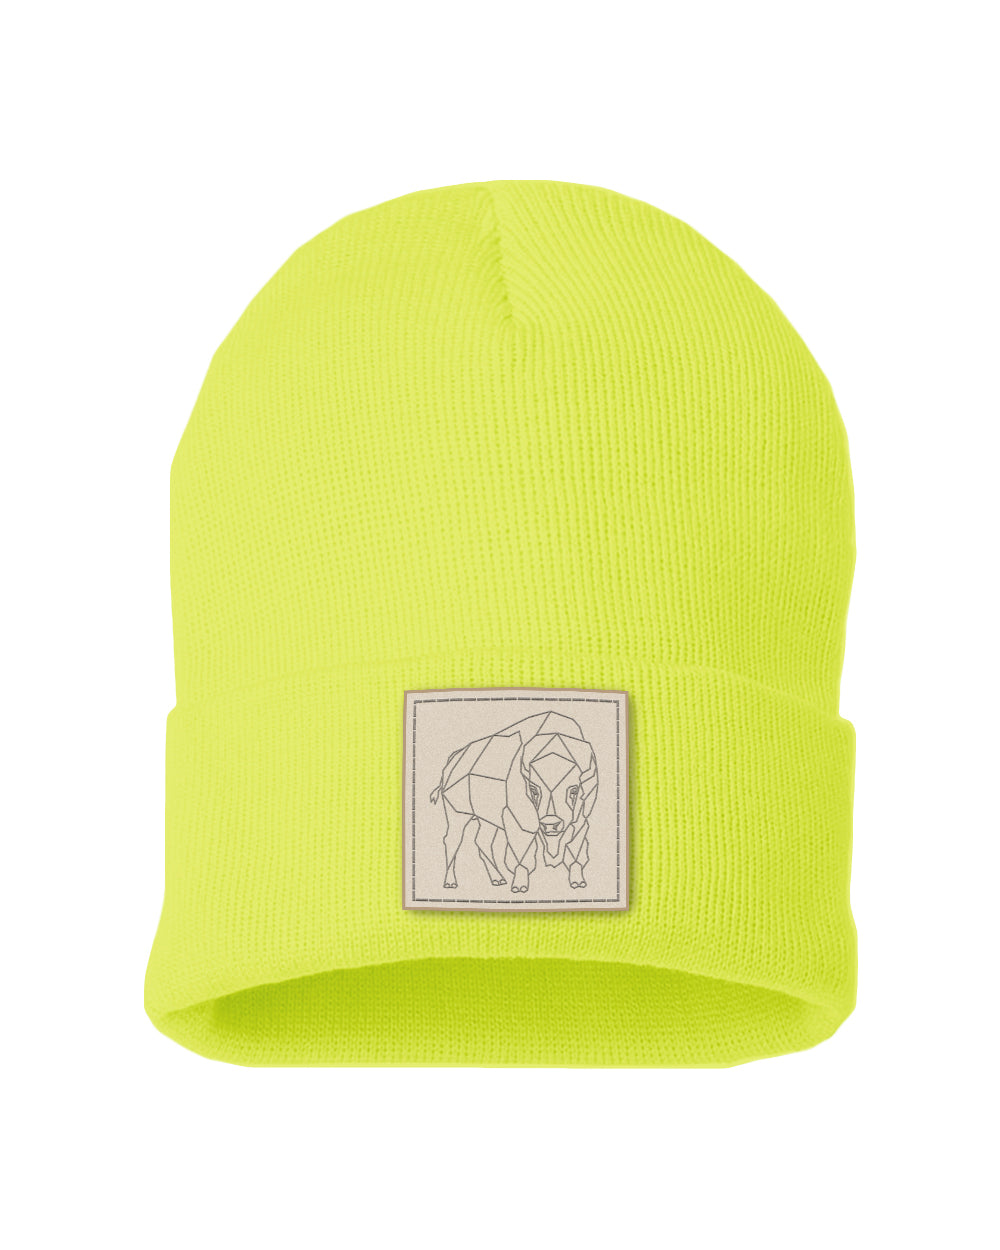 Bison Patch Solid Knit Beanie - Neon Yellow